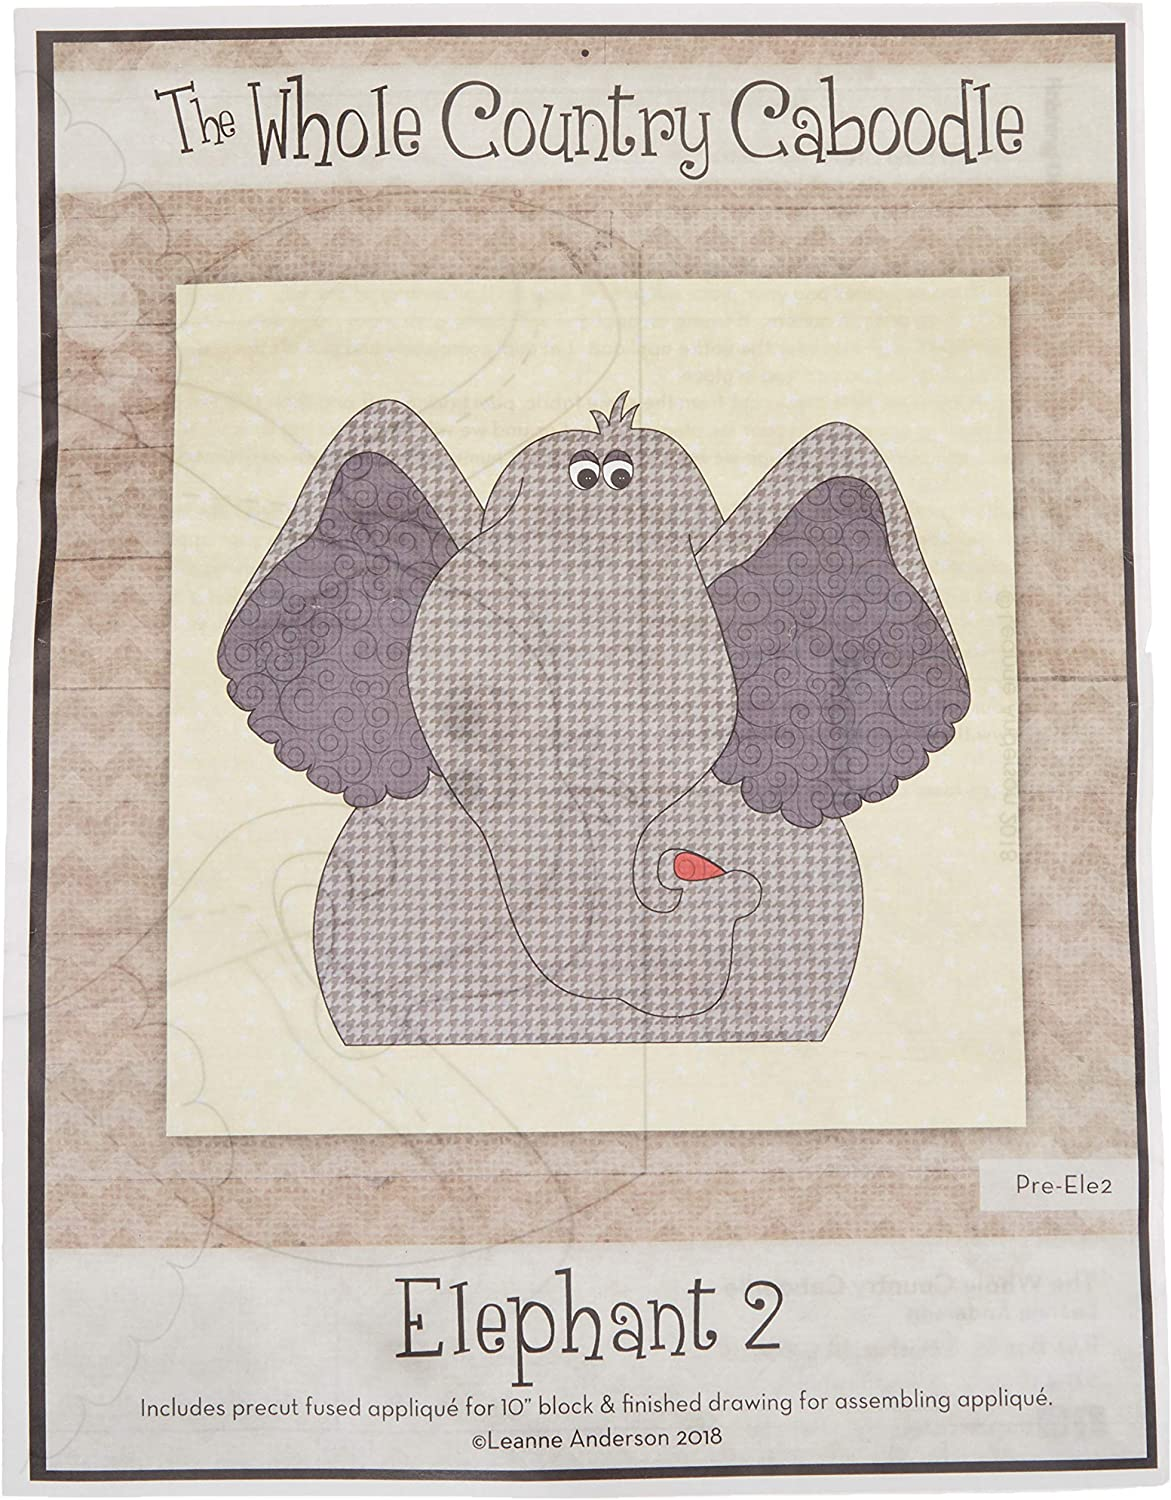 Whole Country Caboodle Alligator Precut Fused Applique Pack Pattern